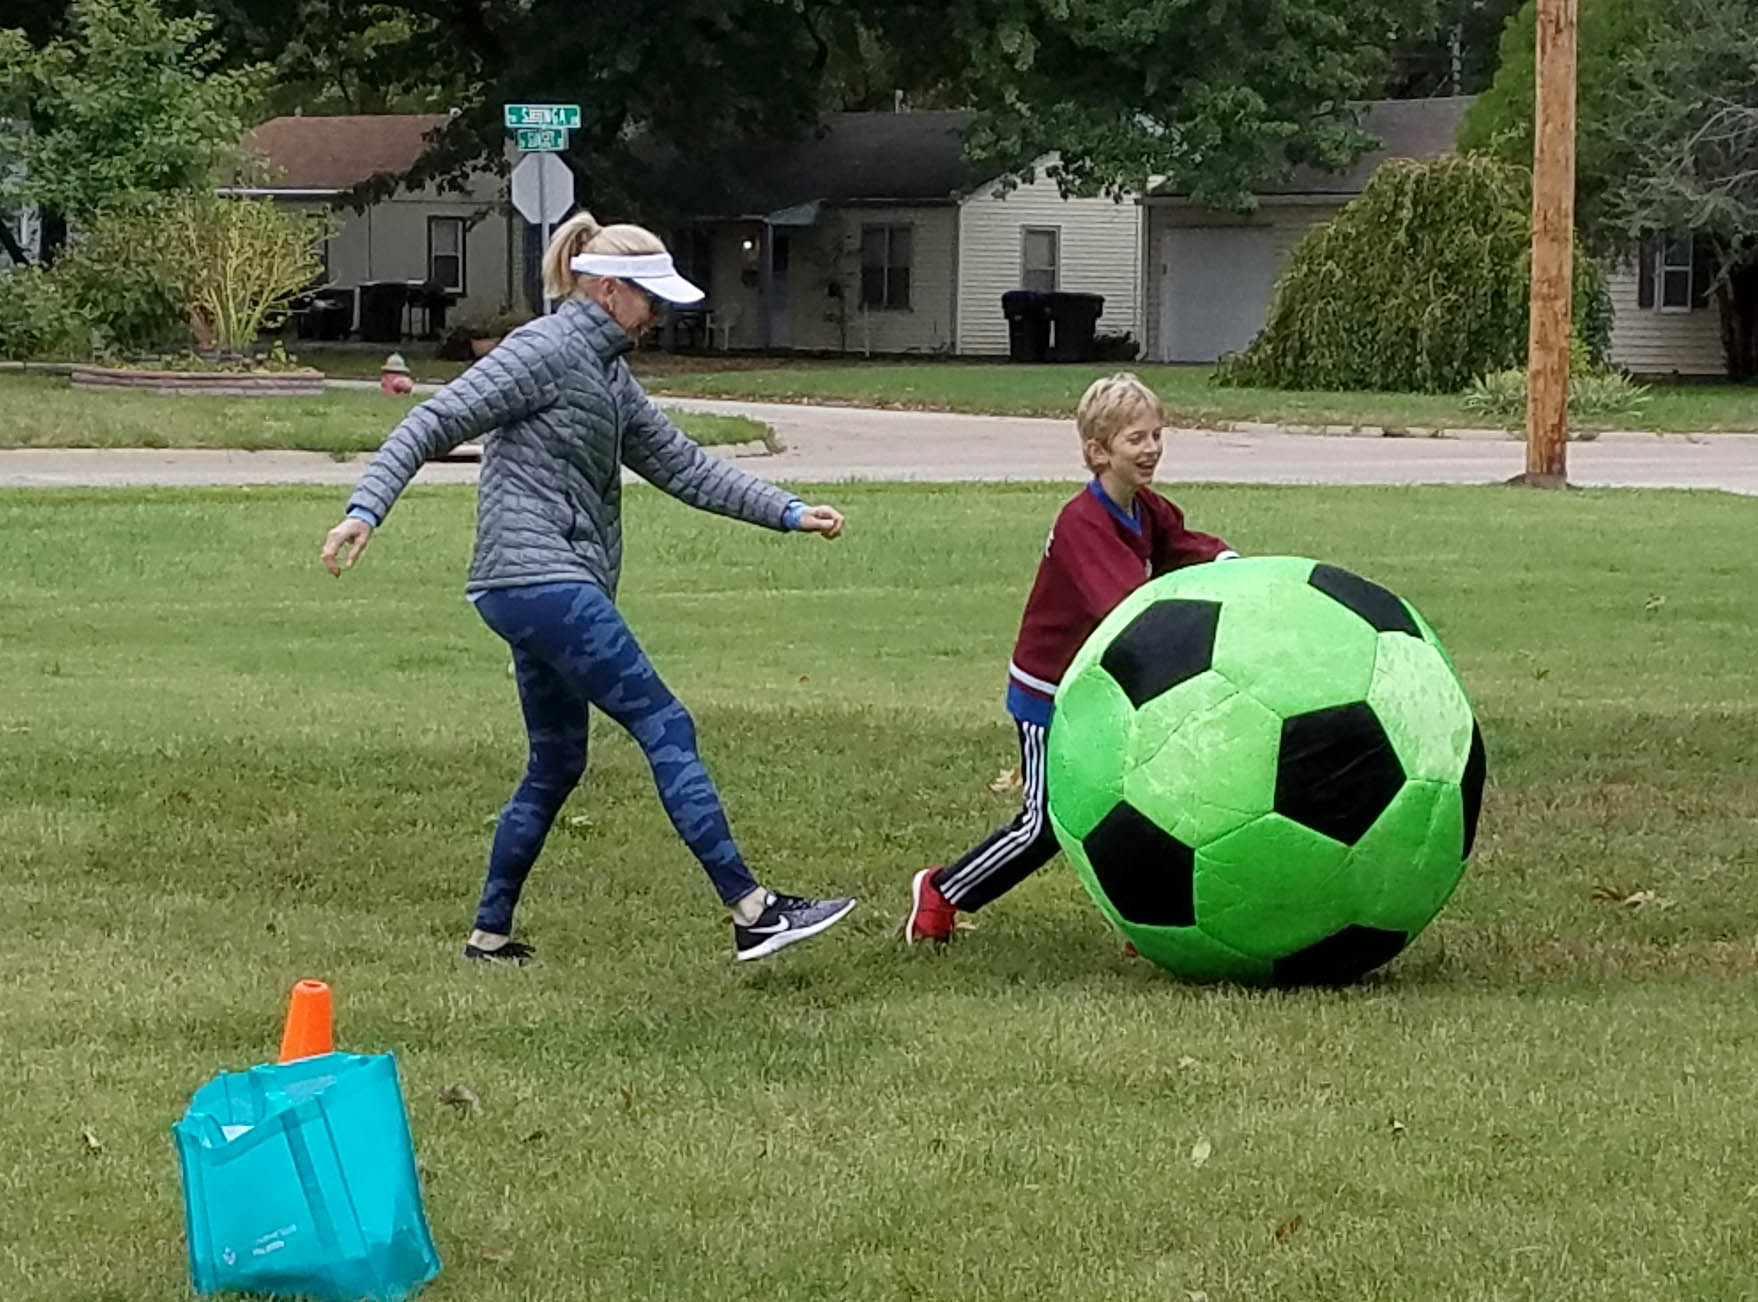 Mom and son playing Giant Soccer Ball